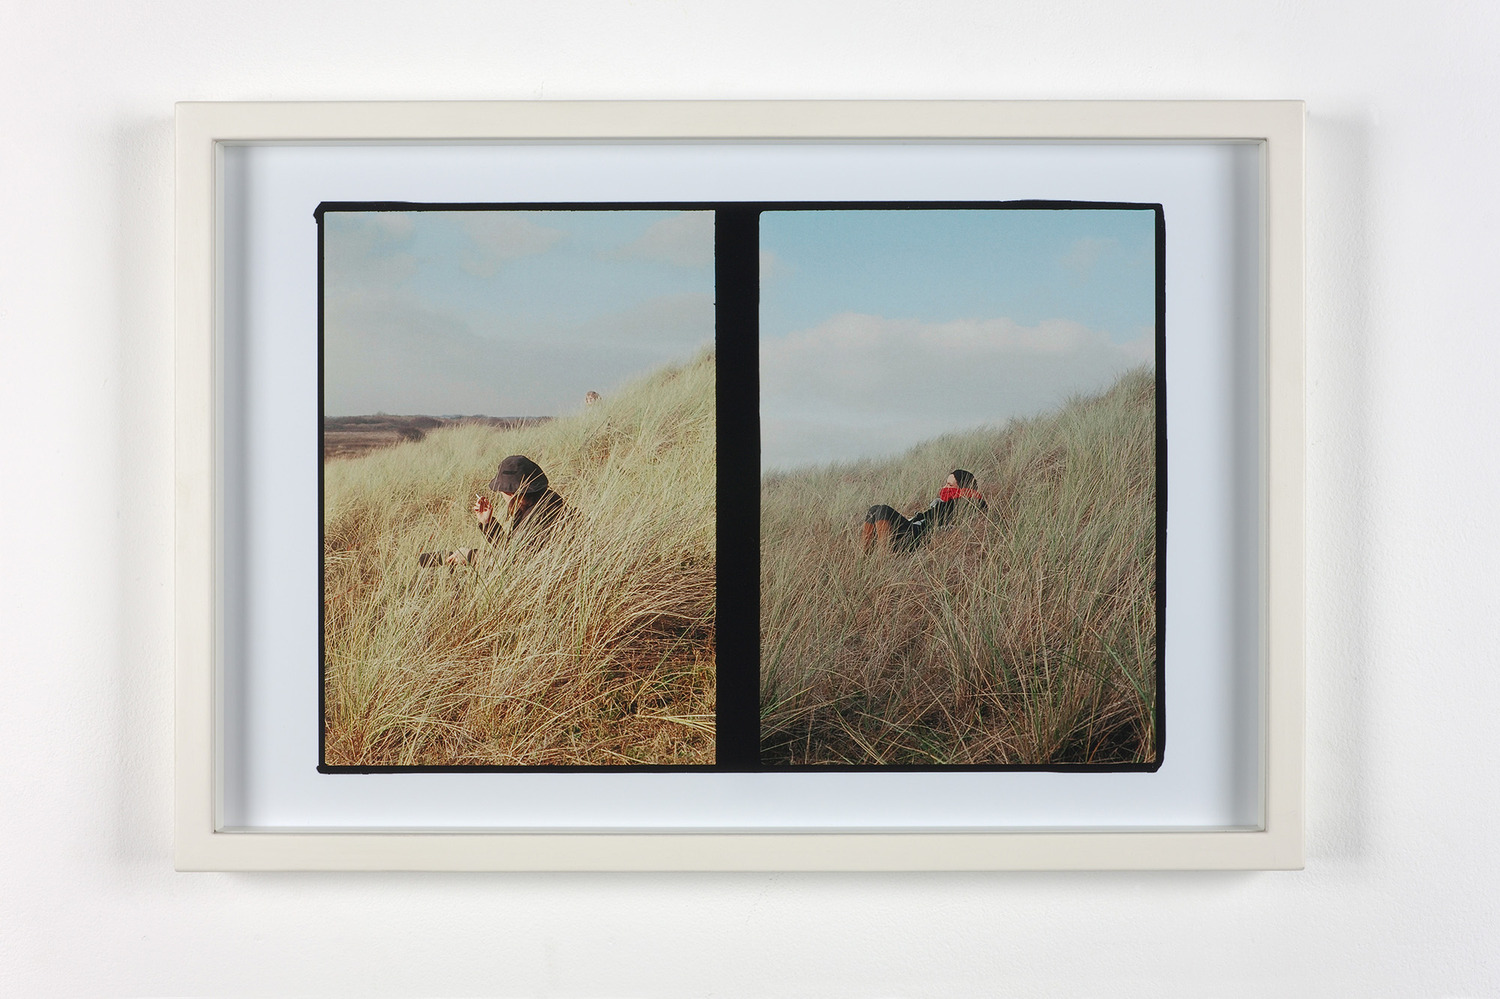 Luke Fowler  Location Recording, Norfolk  (from project, 'Two-Frame Films') 2007 Giclee print Represented by: The Modern Institute (Glasgow);Galerie Gisela Capitain (Cologne); among others